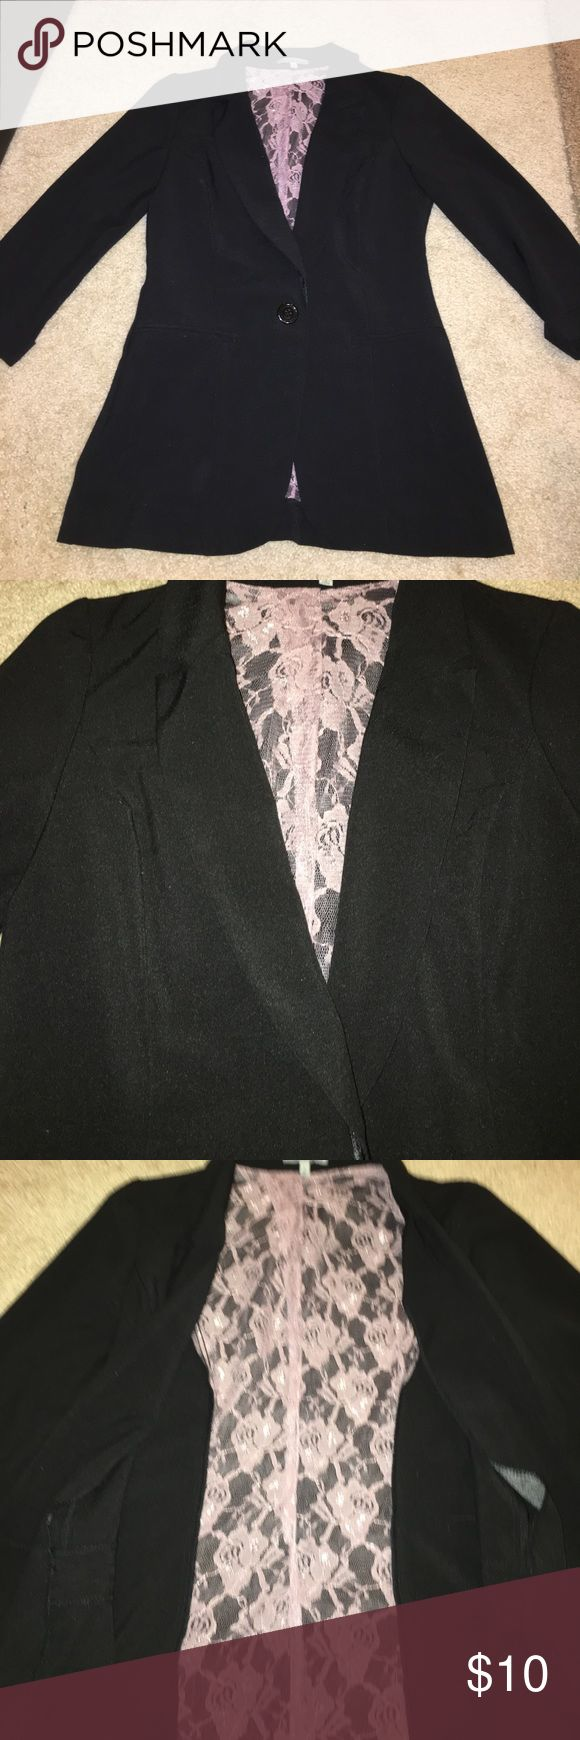 Black 3/4 sleeved blazer Black 3/4 sleeved blazer from Charlotte Russe. In great condition only worn a few times. Great for starting your career! Pockets are faux. Charlotte Russe Jackets & Coats Blazers